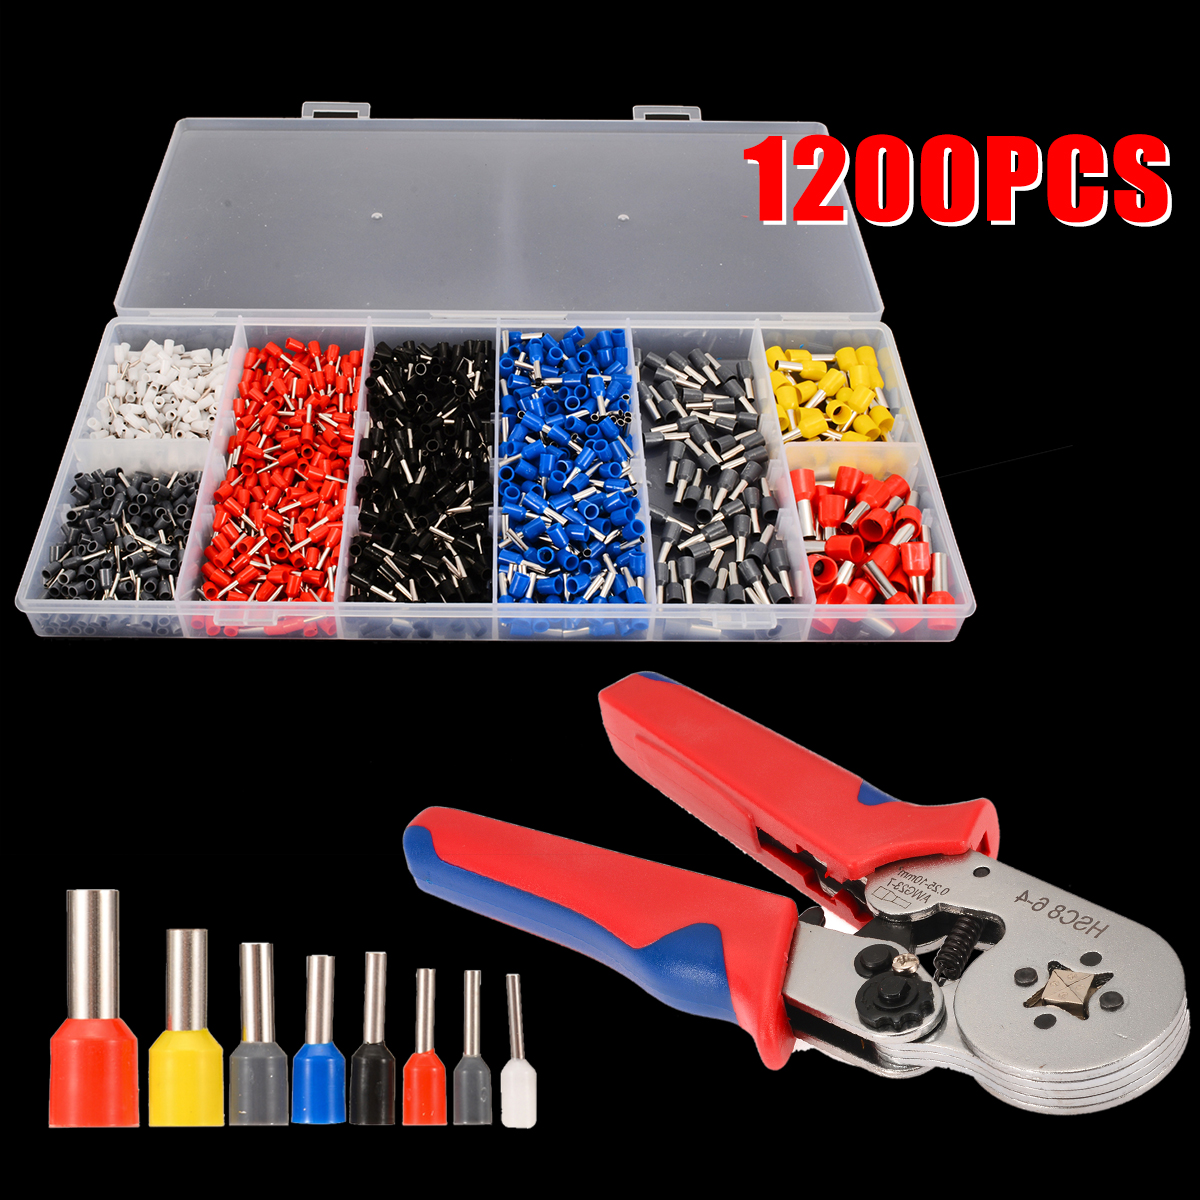 Crimping Pliers Mini 1200pcs 0.5-10.0mm2 Electric Tube Terminals Multitool Adjustable Crimping Press Pliers Hand Tools